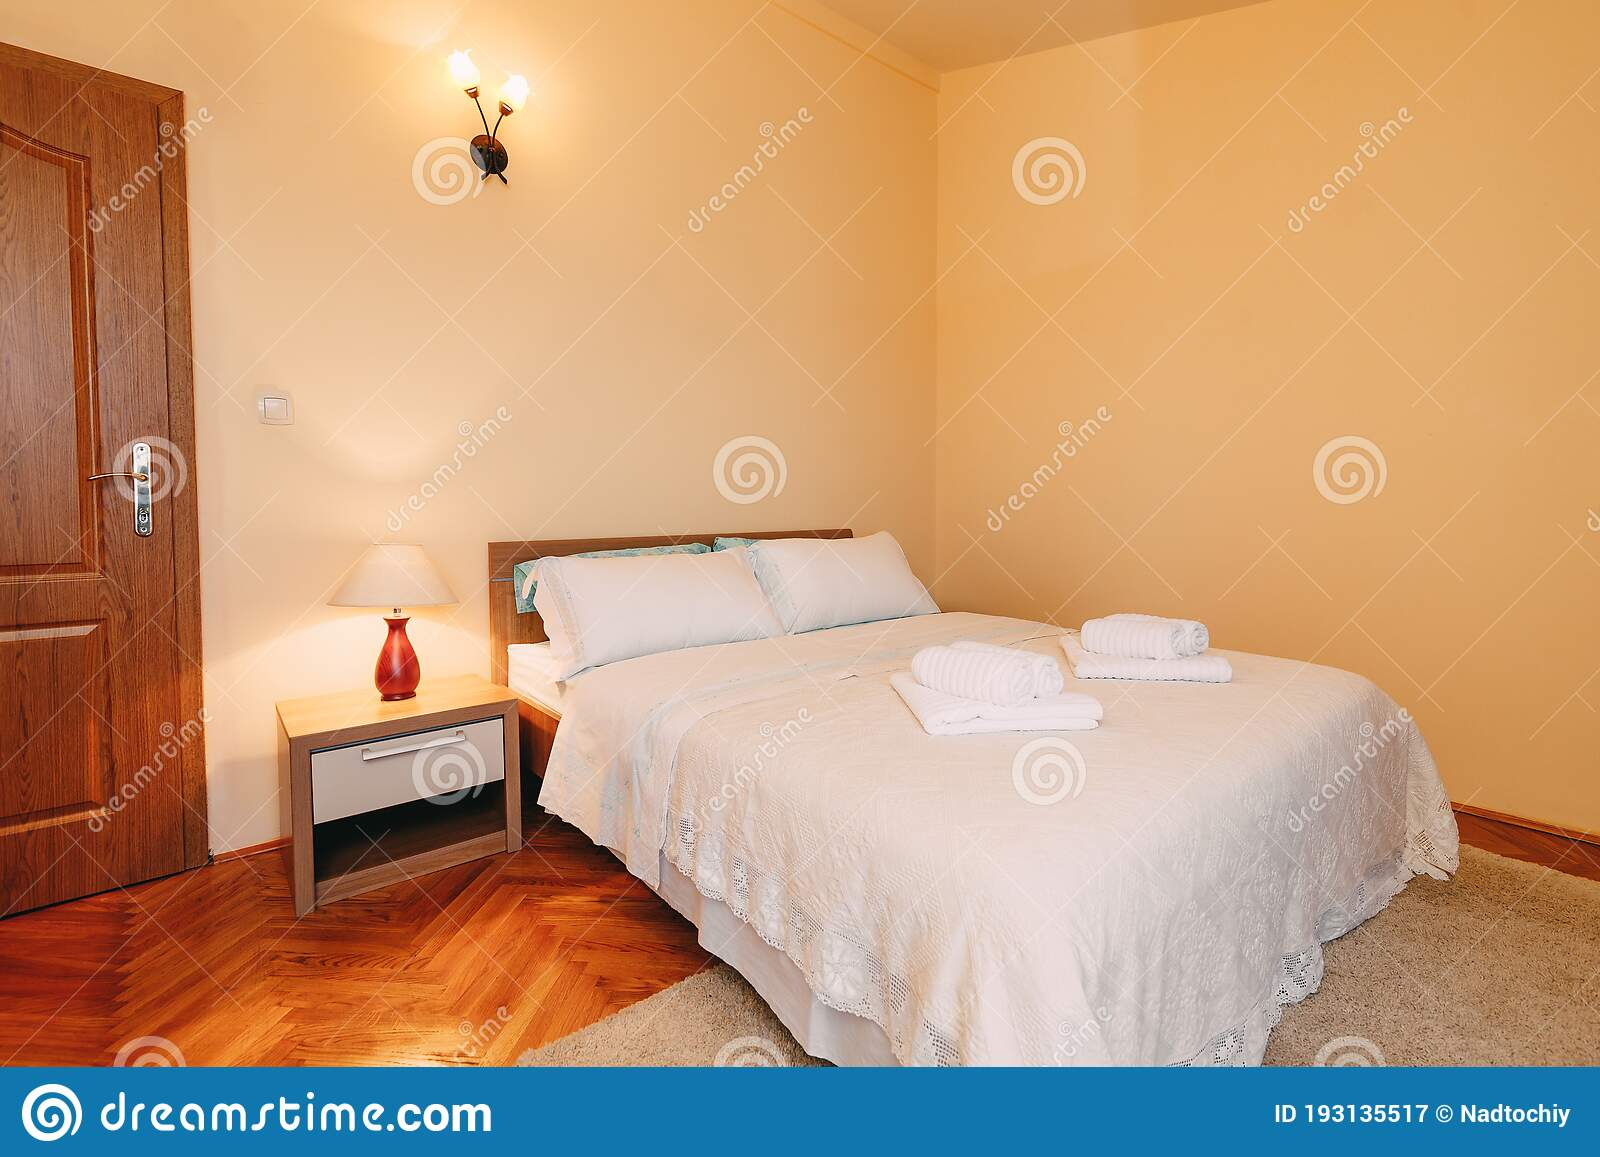 Picture of: Large Queen Size Bed With Pillows And Fluffy Towels On The Bedspread In A Spacious Room With Reading And Wall Lamps And Stock Image Image Of Curbstone House 193135517